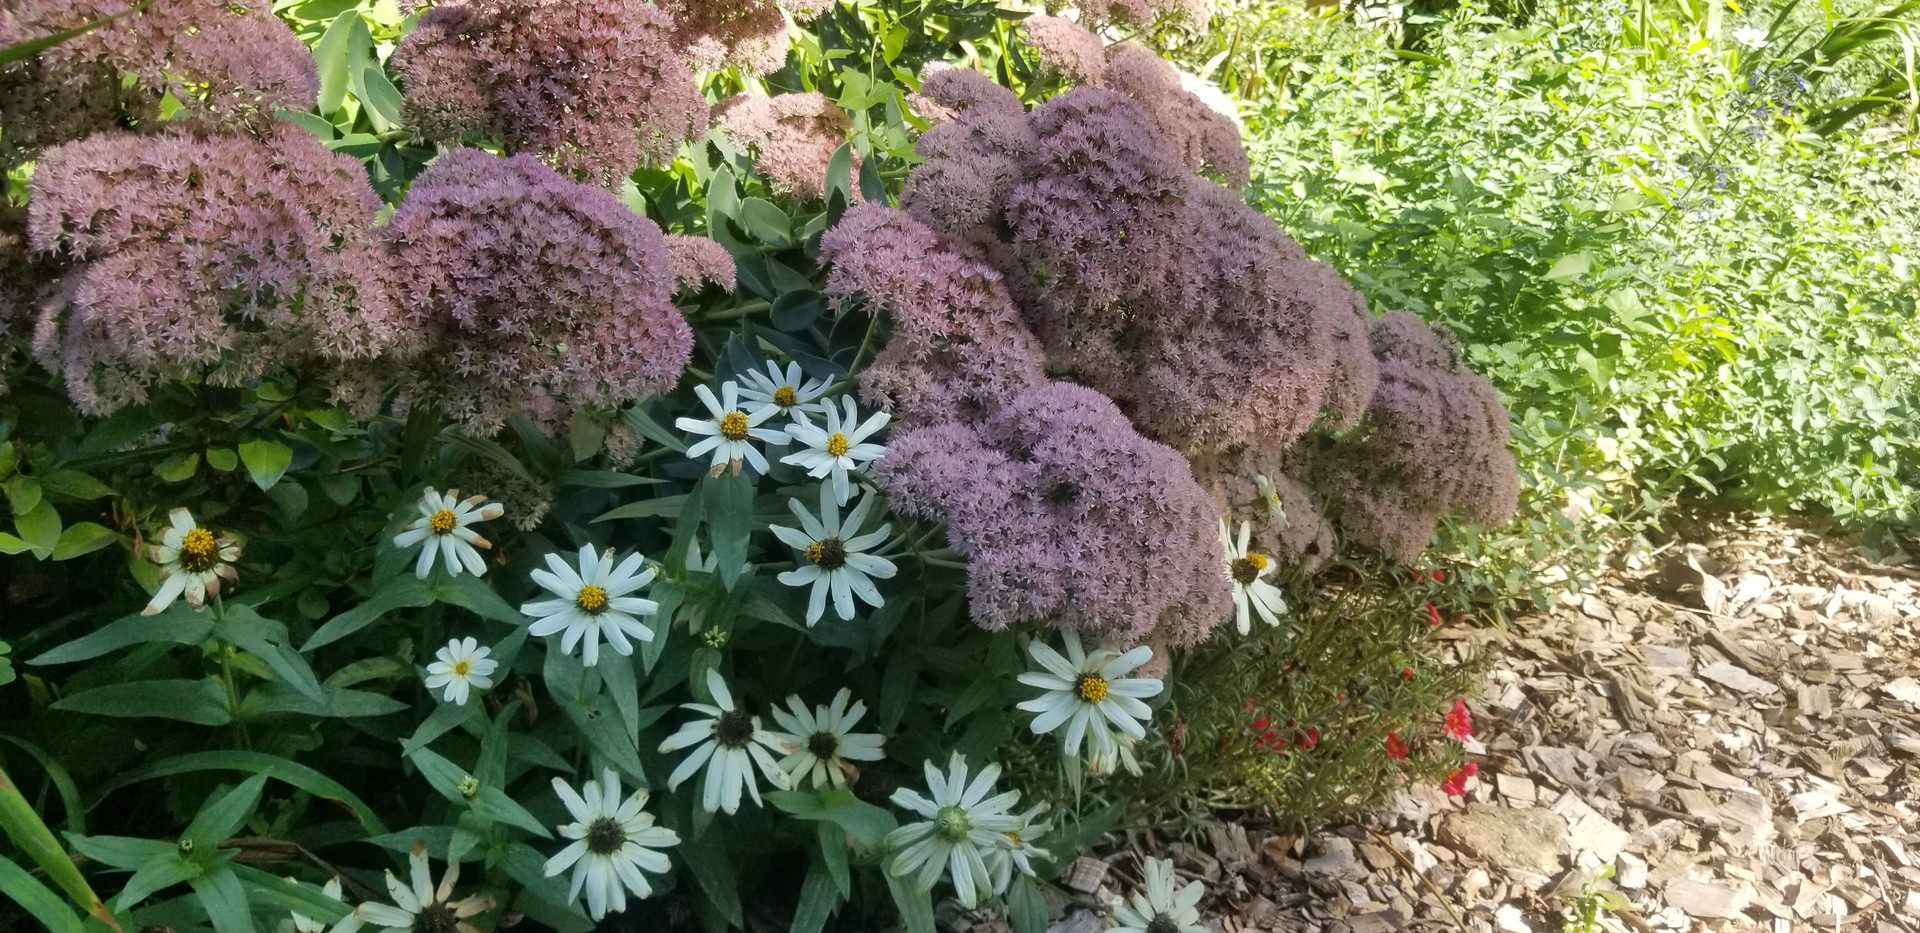 Stonecrop and annual aster